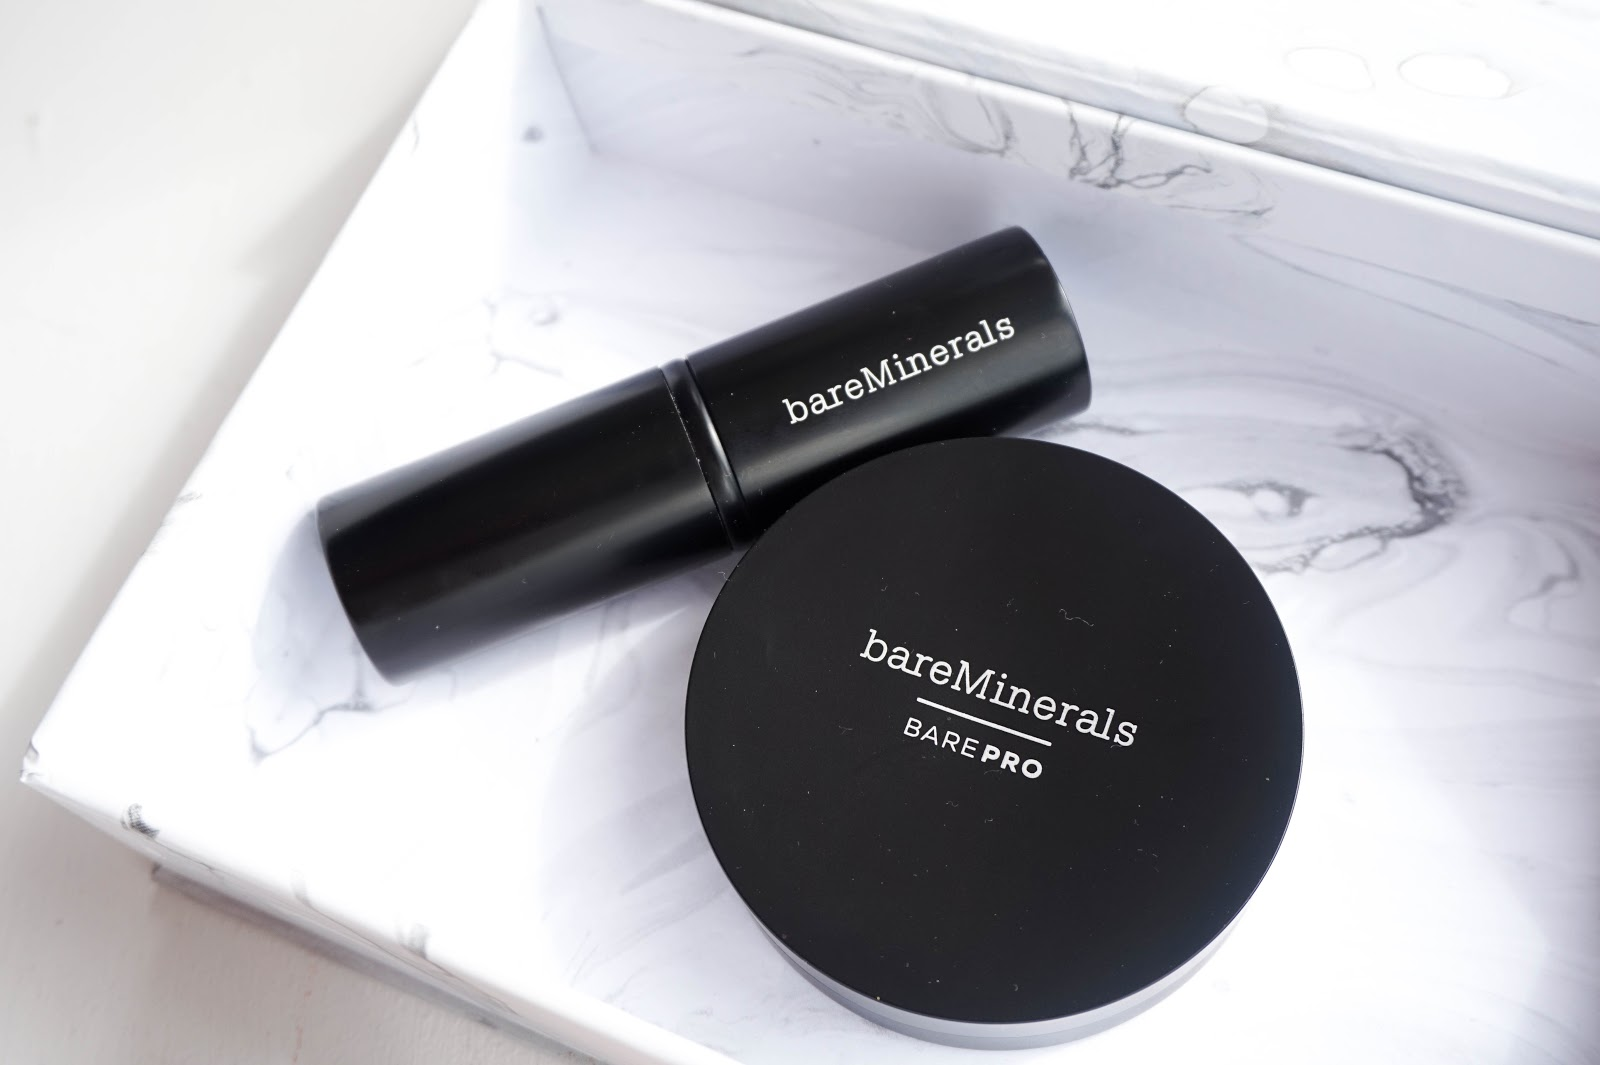 Free The Face With BareMinerals BAREPRO